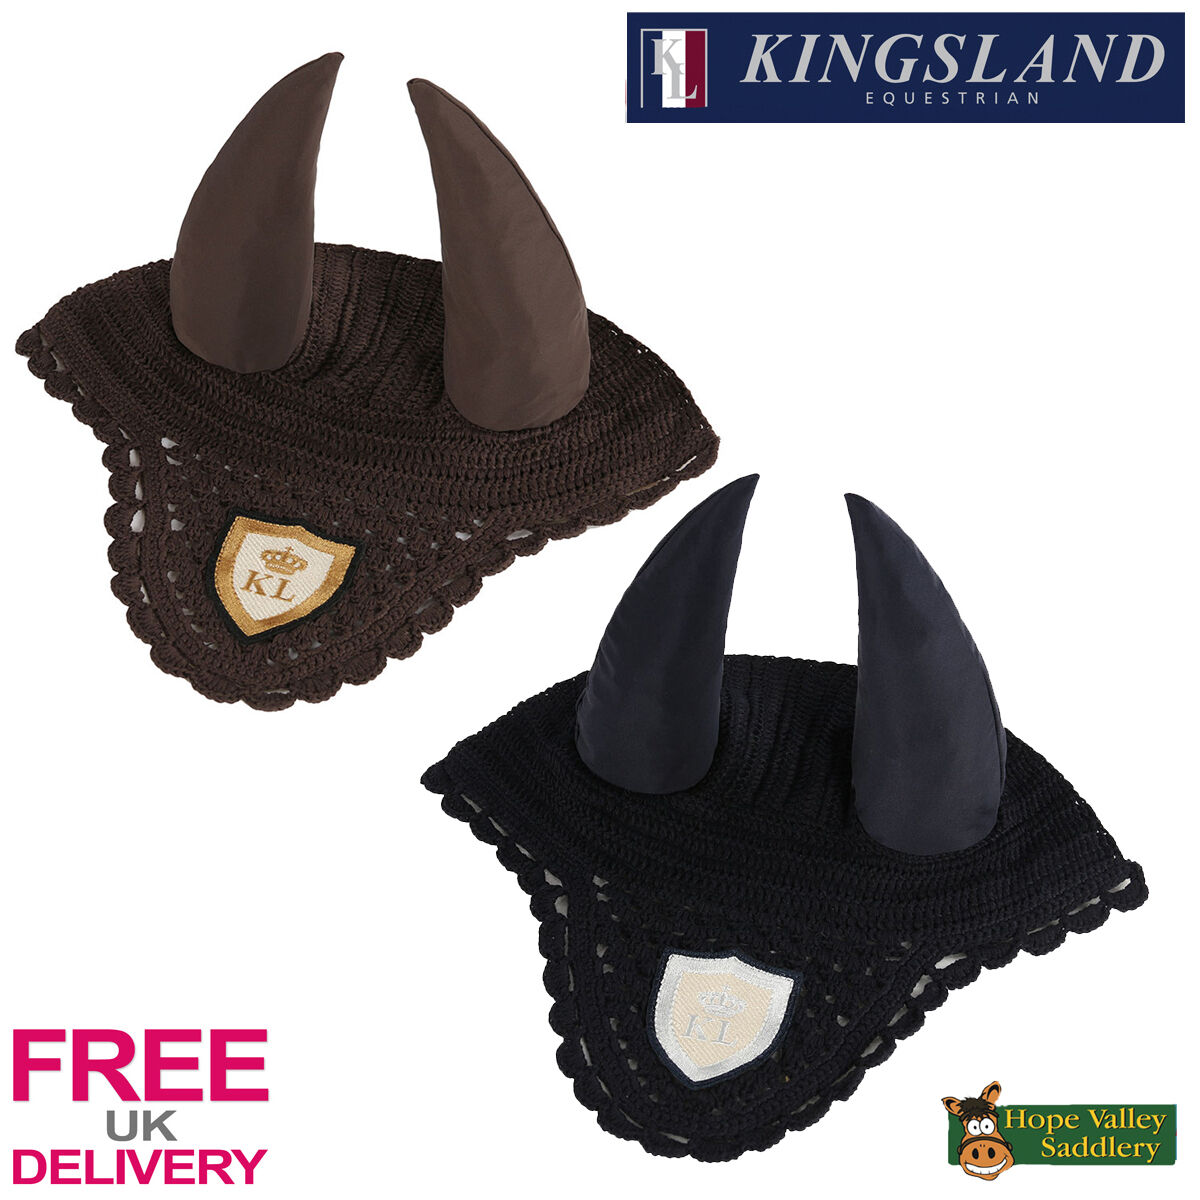 Kingsland Ever  Fly Hat Fly Veil (153-HG-292) BNWT  the best selection of